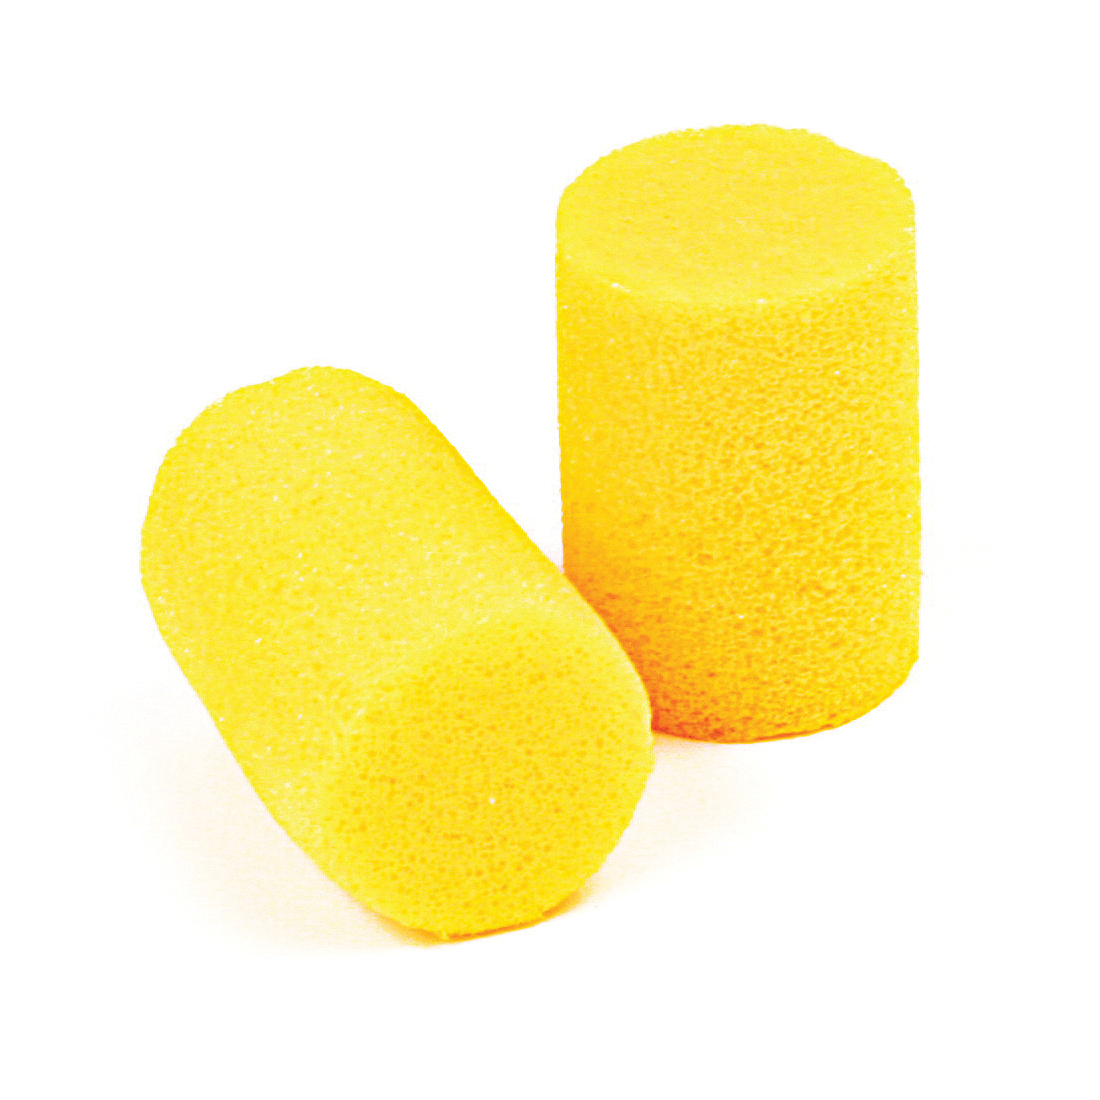 3M™ E-A-R™ 080529-11080 Earplugs, 29 dB Noise Reduction, Cylindrical Shape, CSA Class AL, Disposable, Uncorded Design